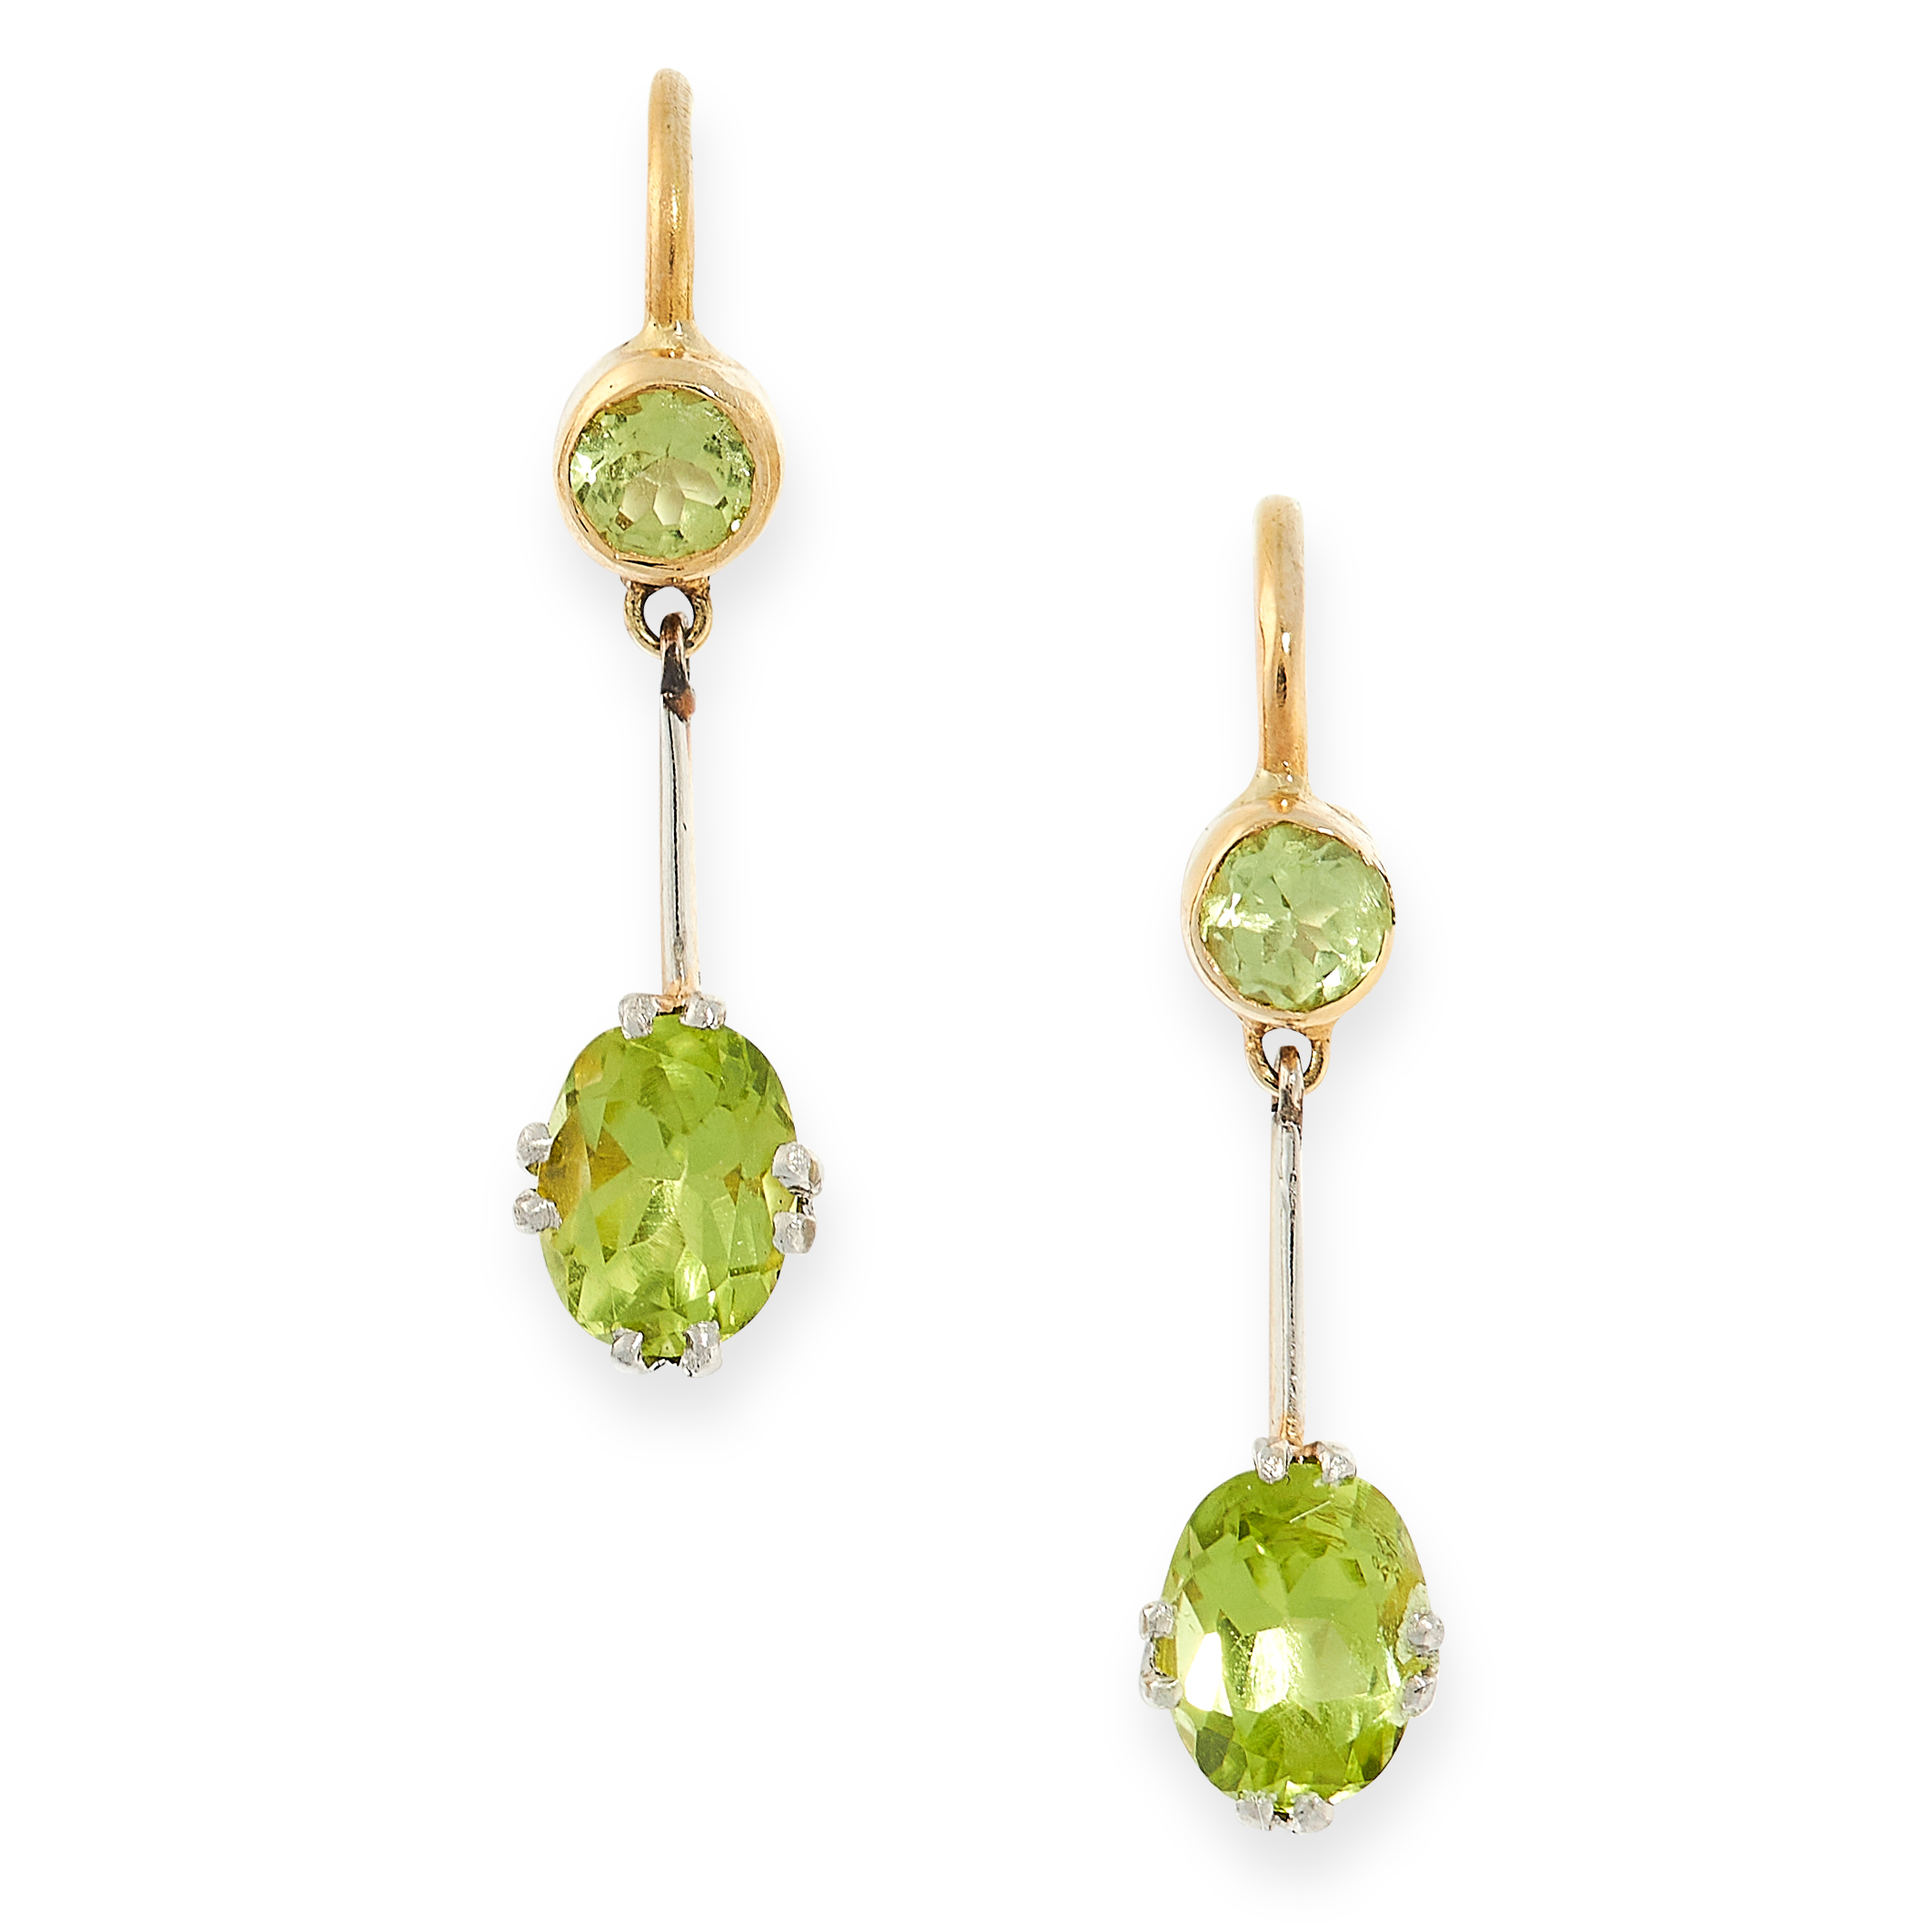 PAIR OF PERIDOT DROP EARRINGS in yellow gold, each formed of a round cut peridot above a further